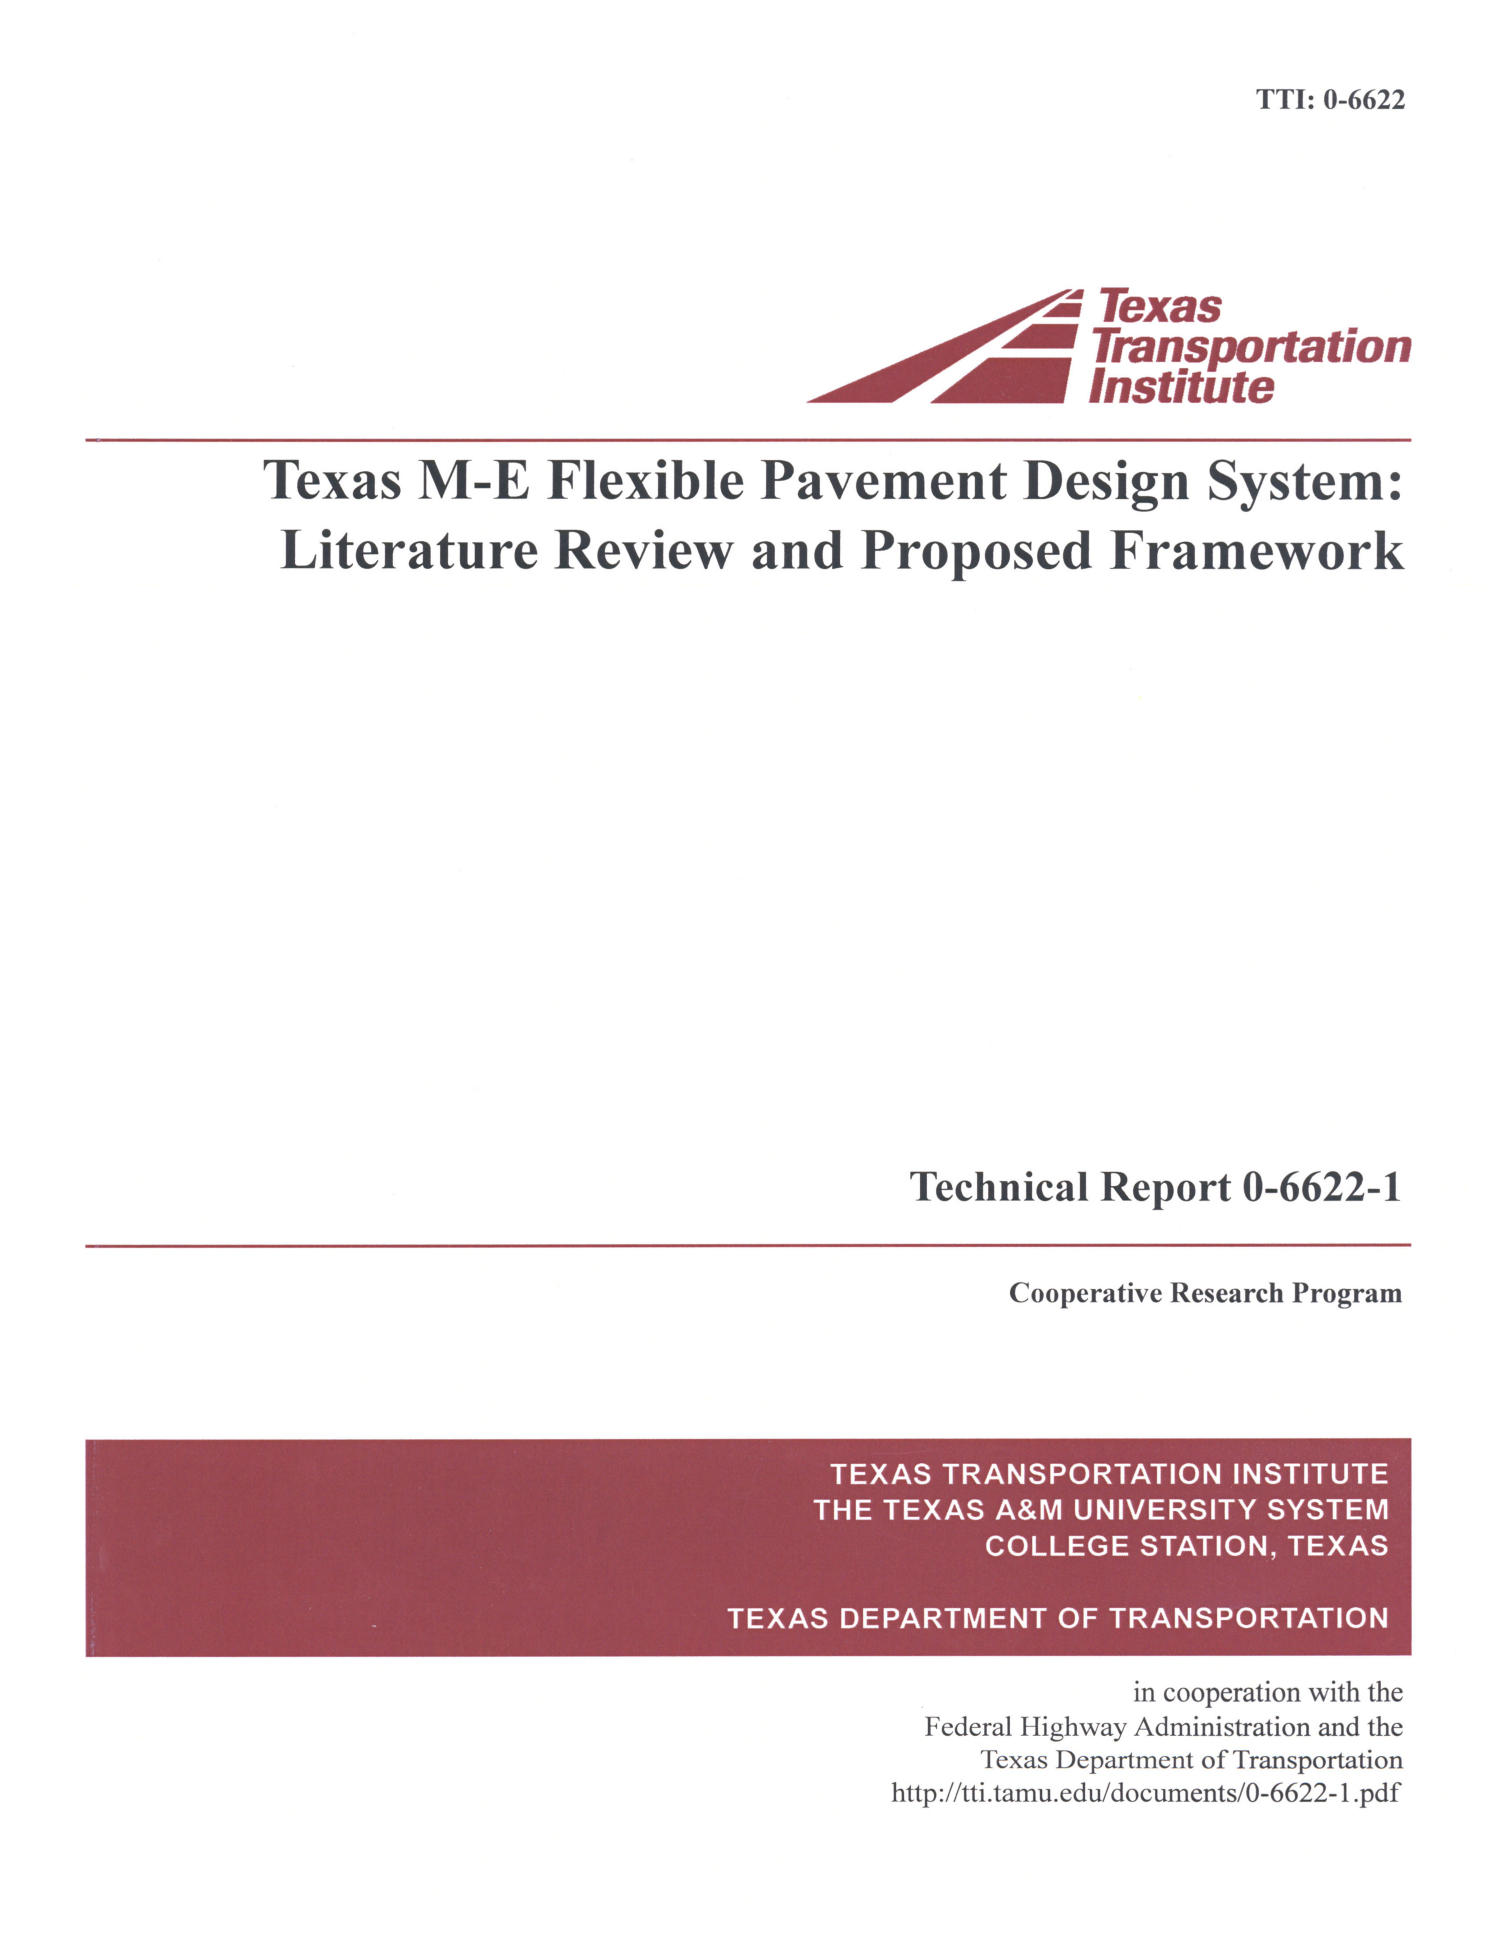 Texas M-E flexible pavement design system : literature review and proposed framework                                                                                                      Front Cover